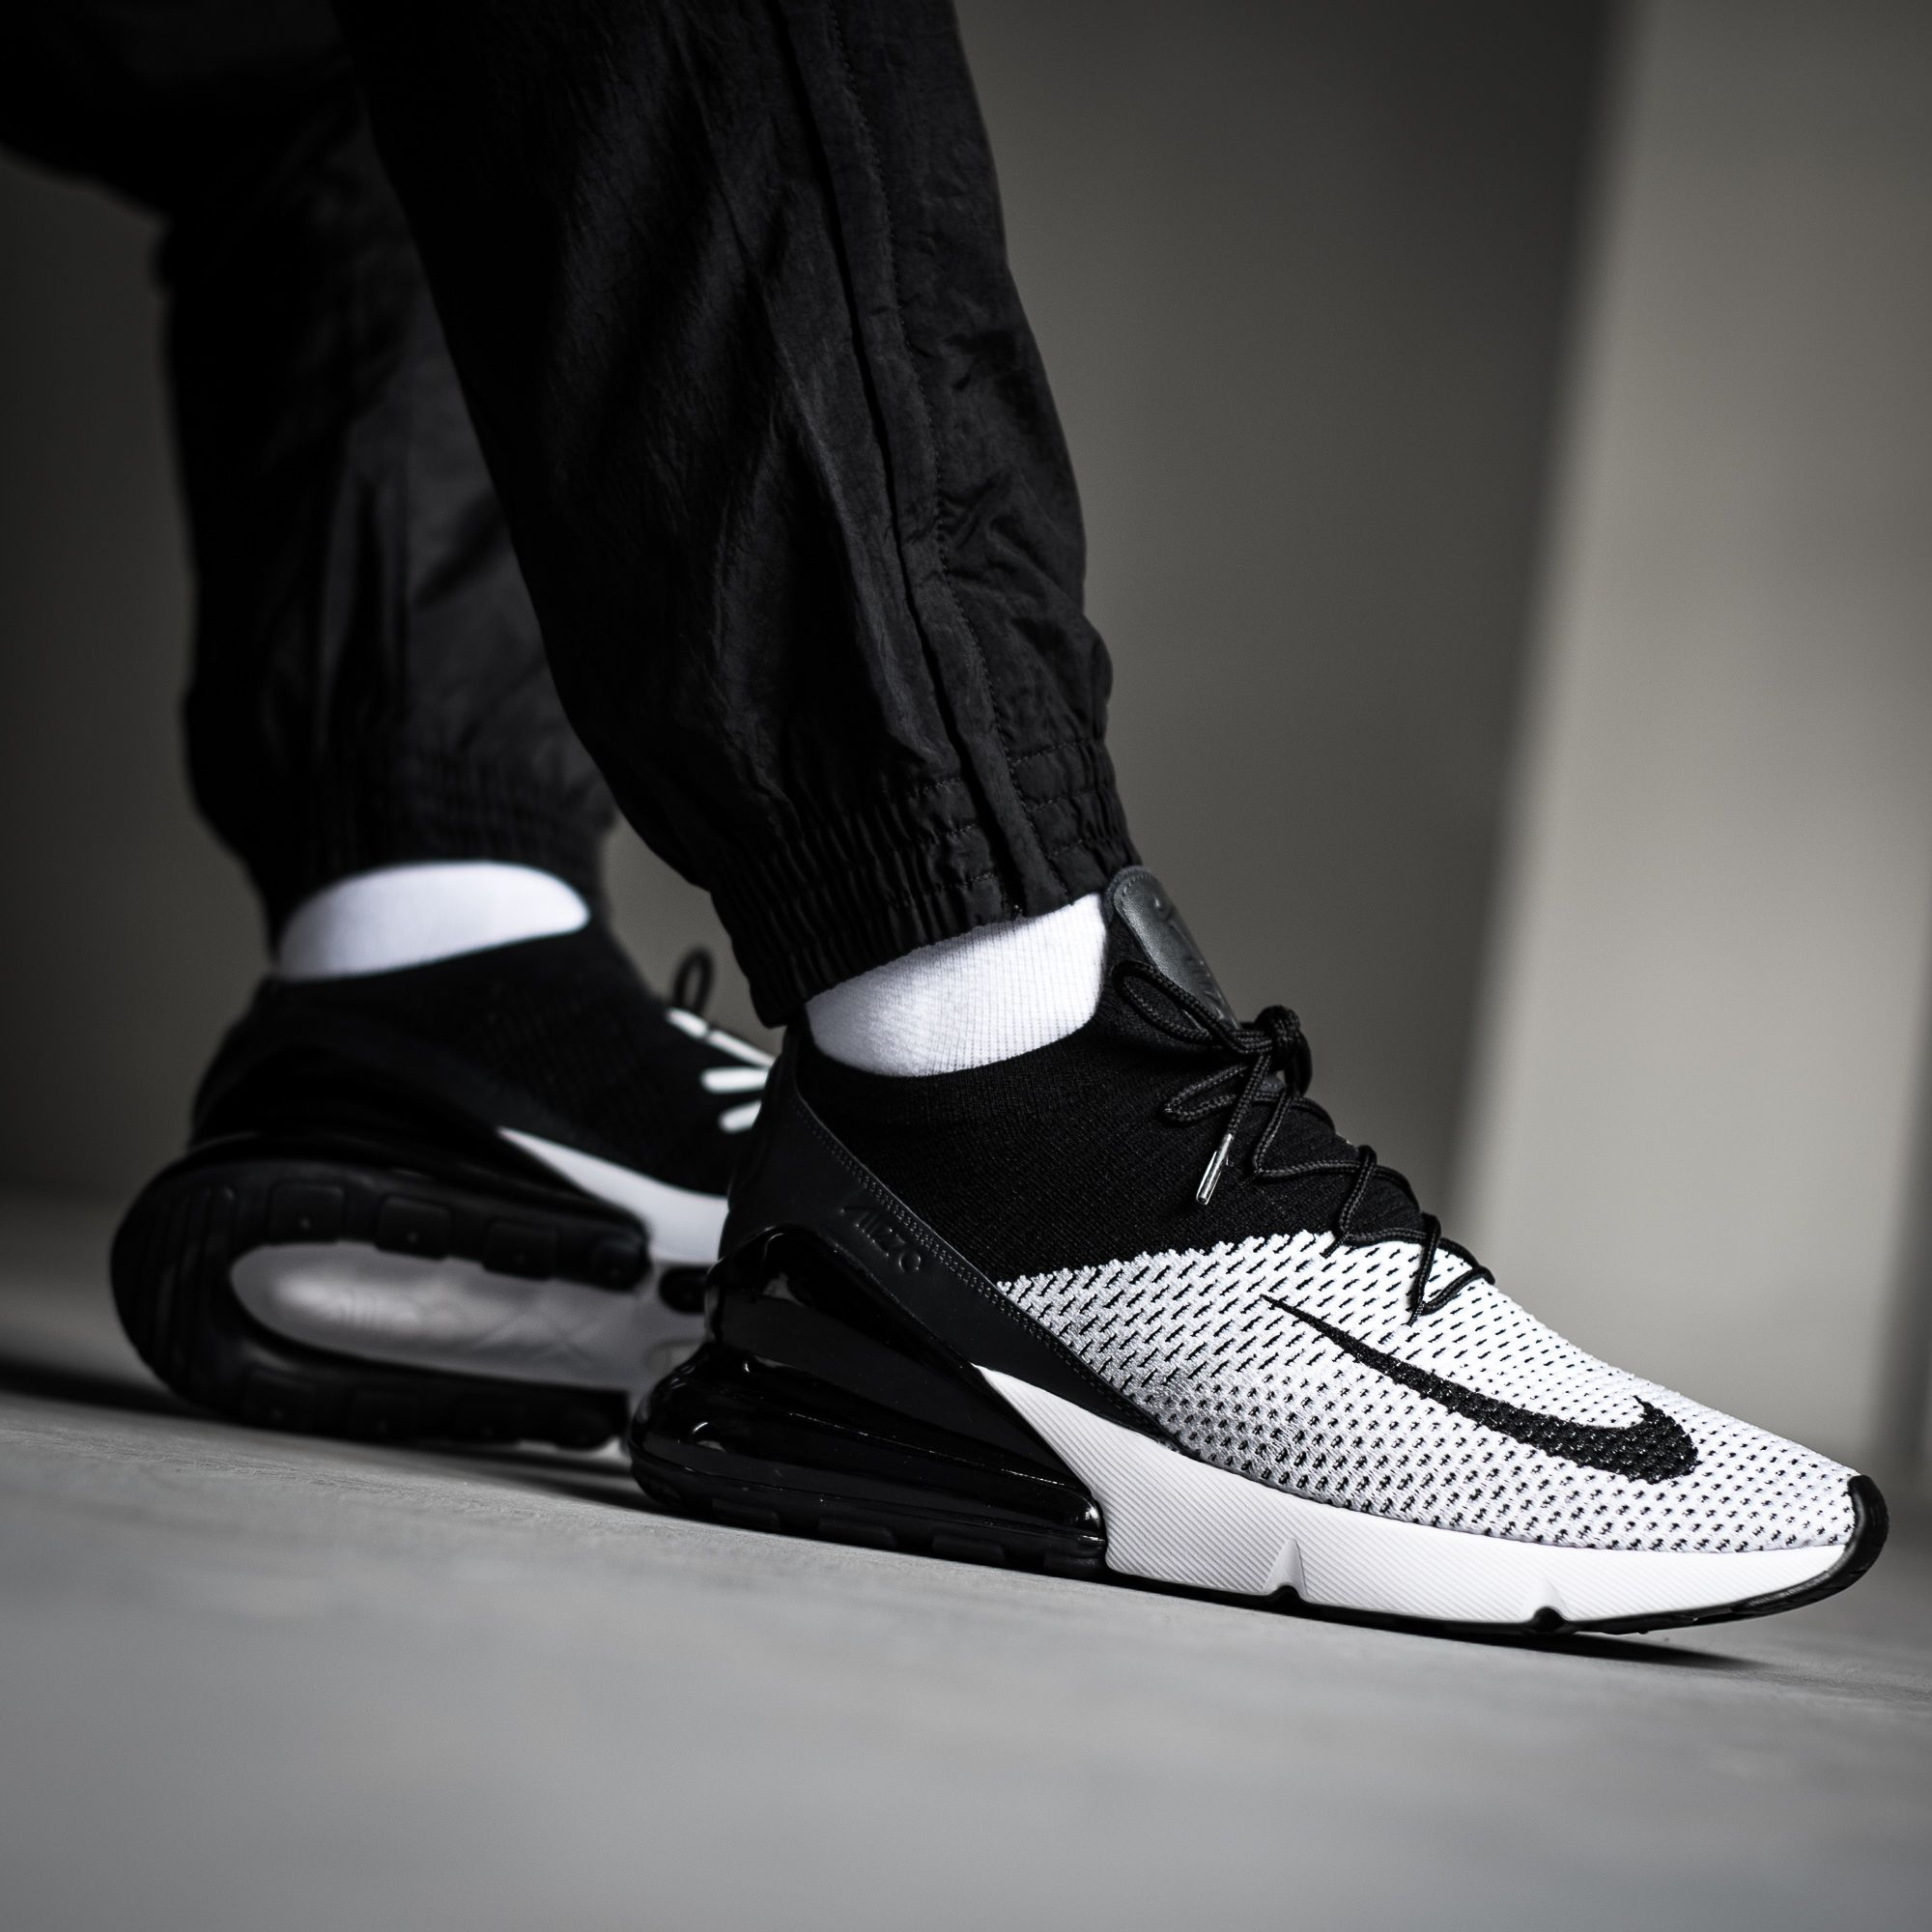 479d6231689a The brand-new NIKE AIR MAX 270 FLYKNIT in a white black-anthracite  colorway! Get yours on kickz.com!